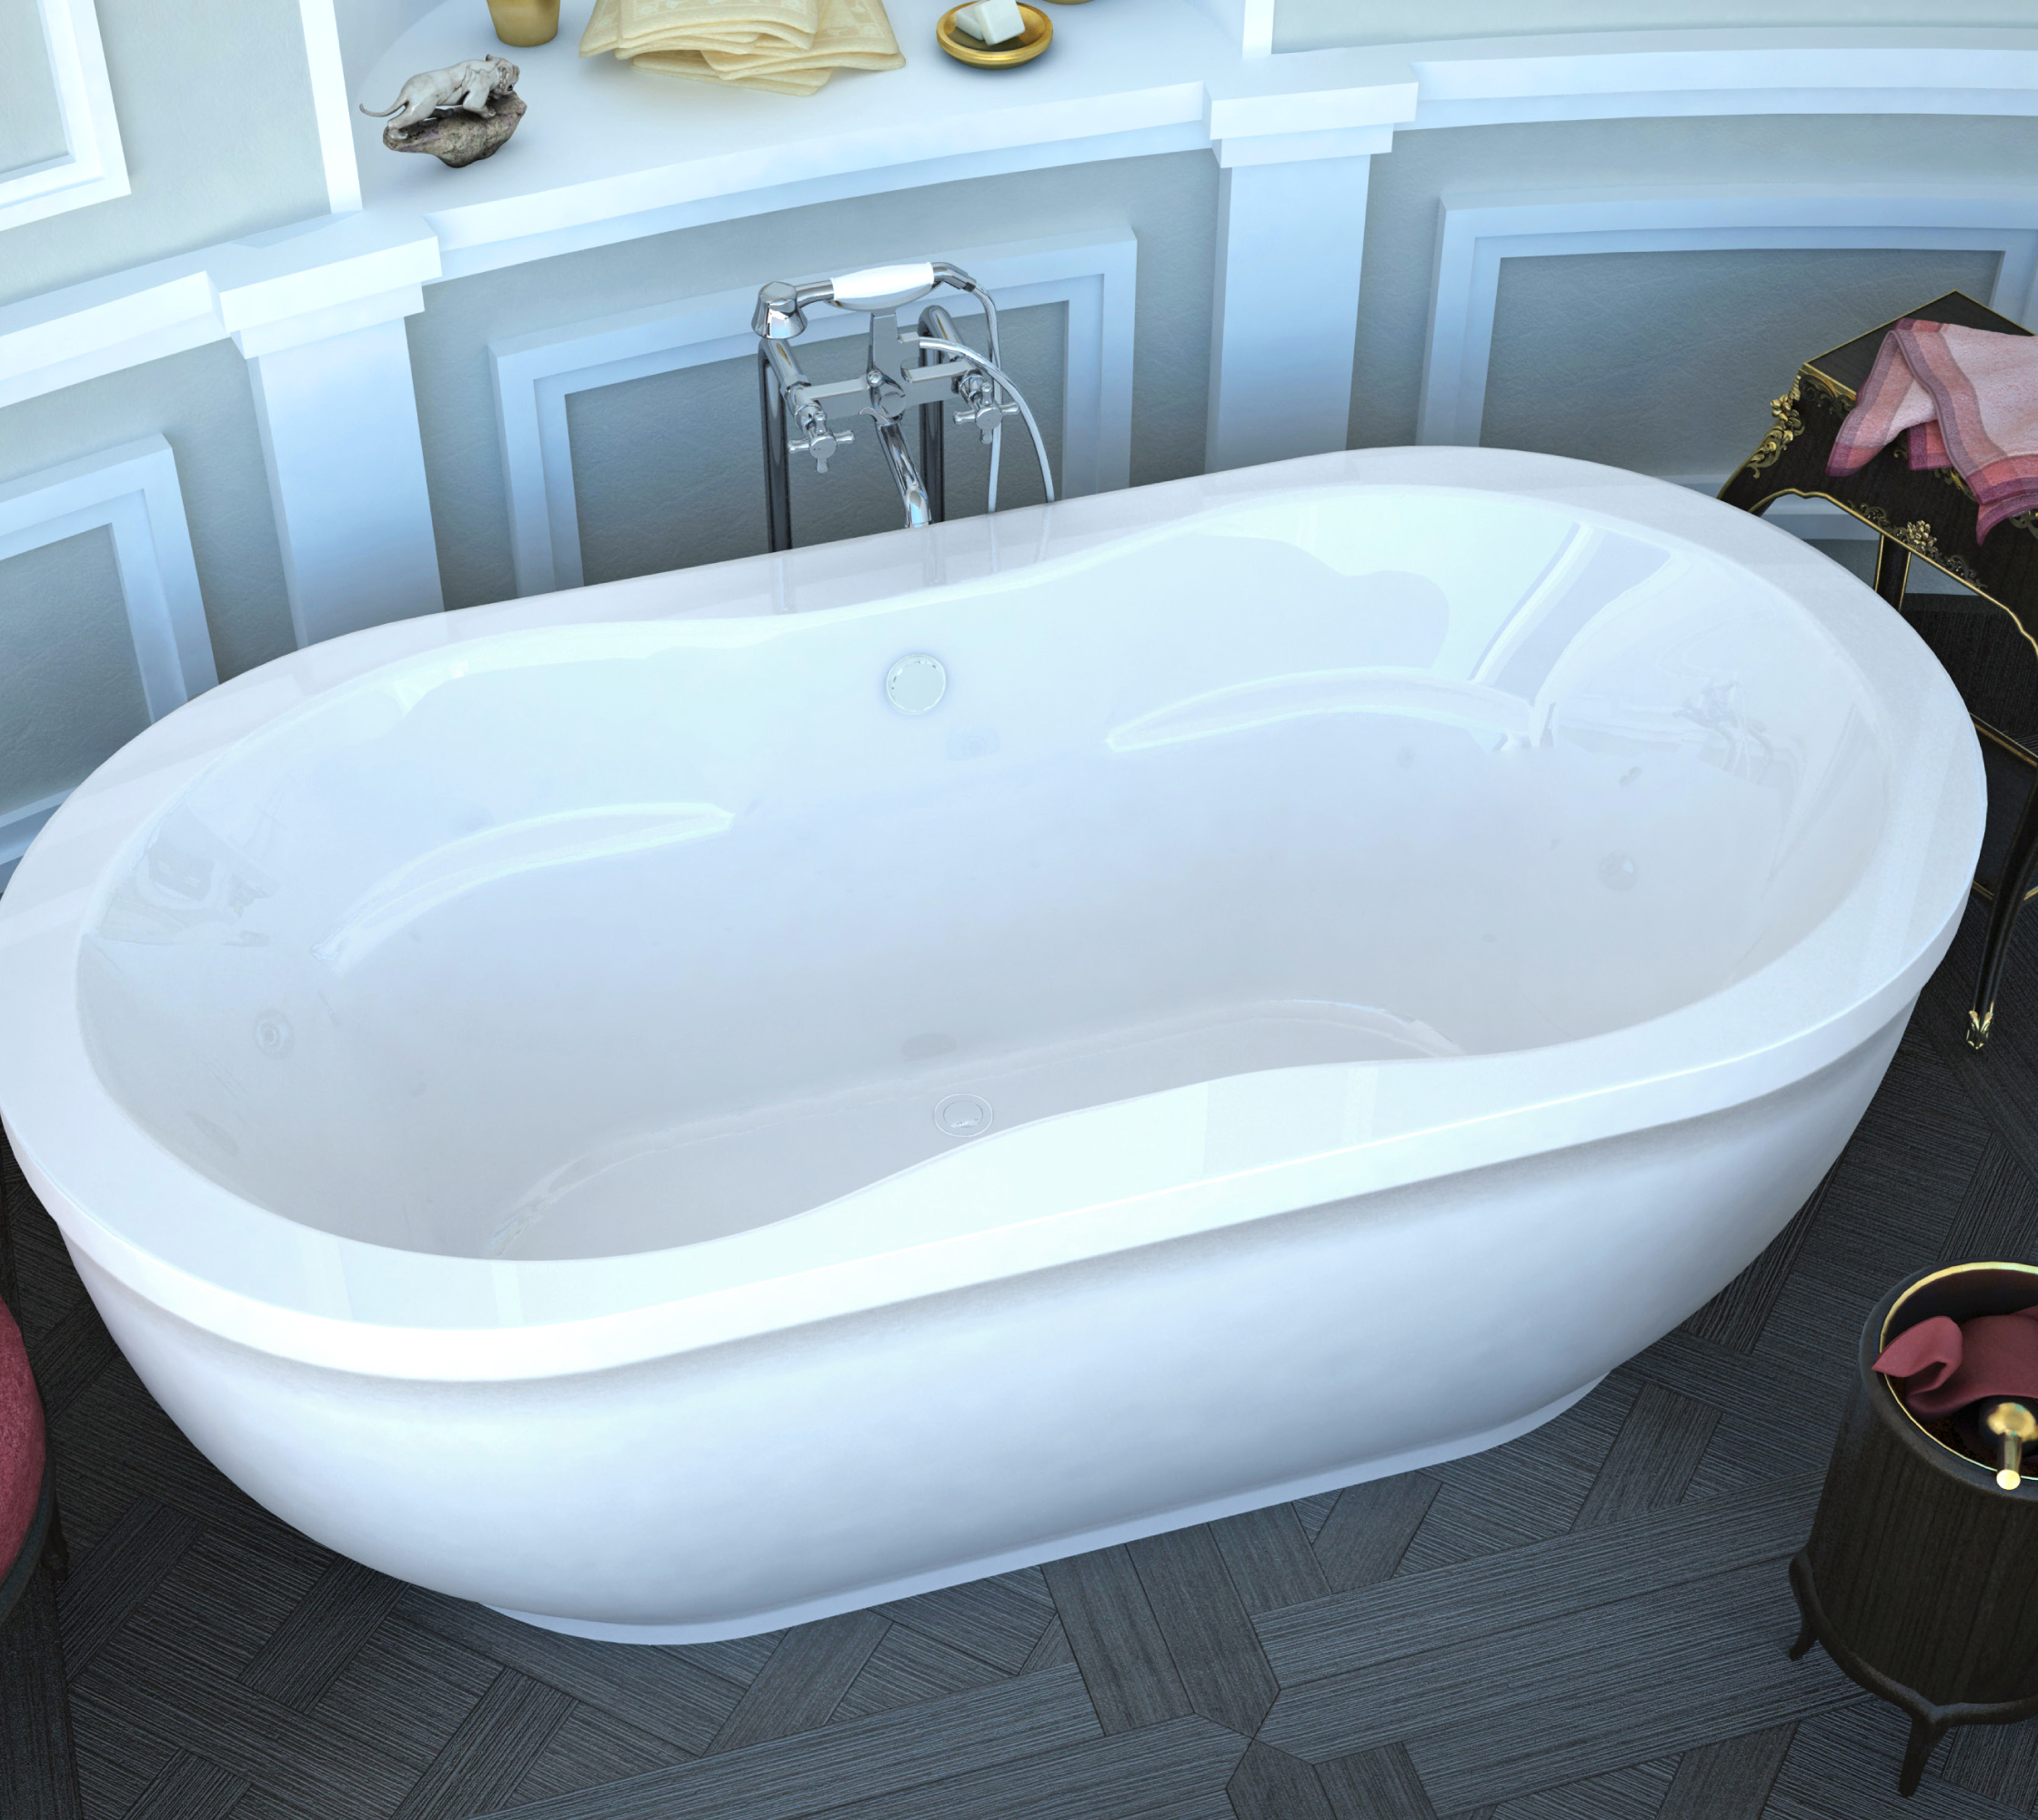 Freestanding Tubs - Whirlpool Tubs - Bathtubs